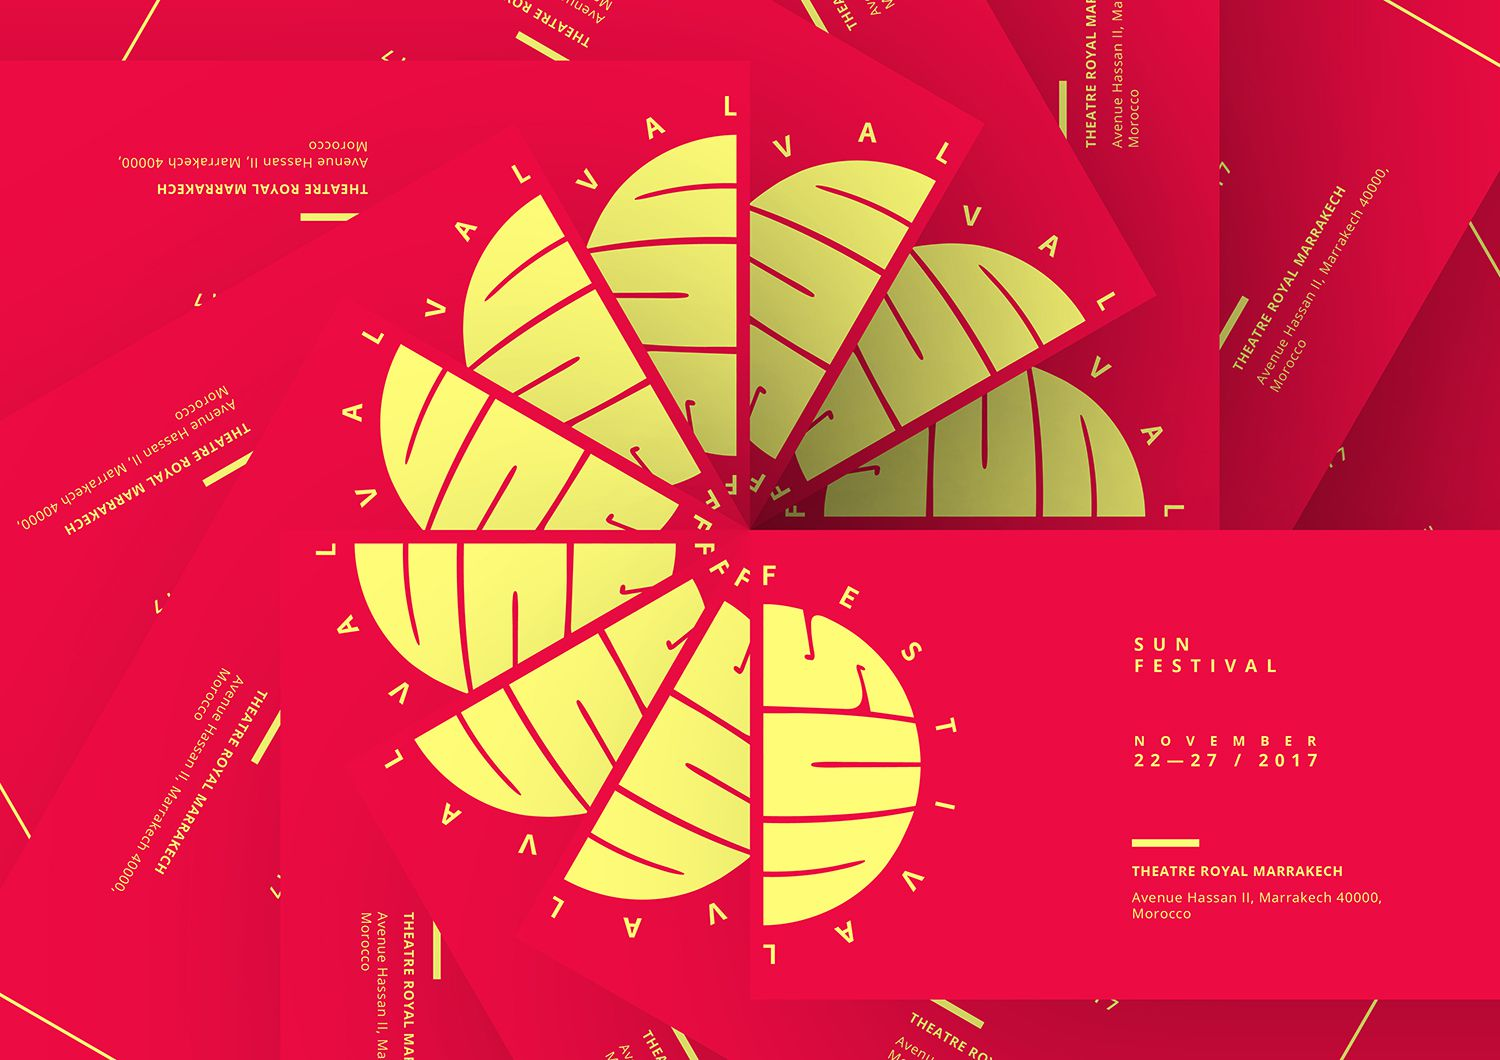 Sun Festival Ticket design London